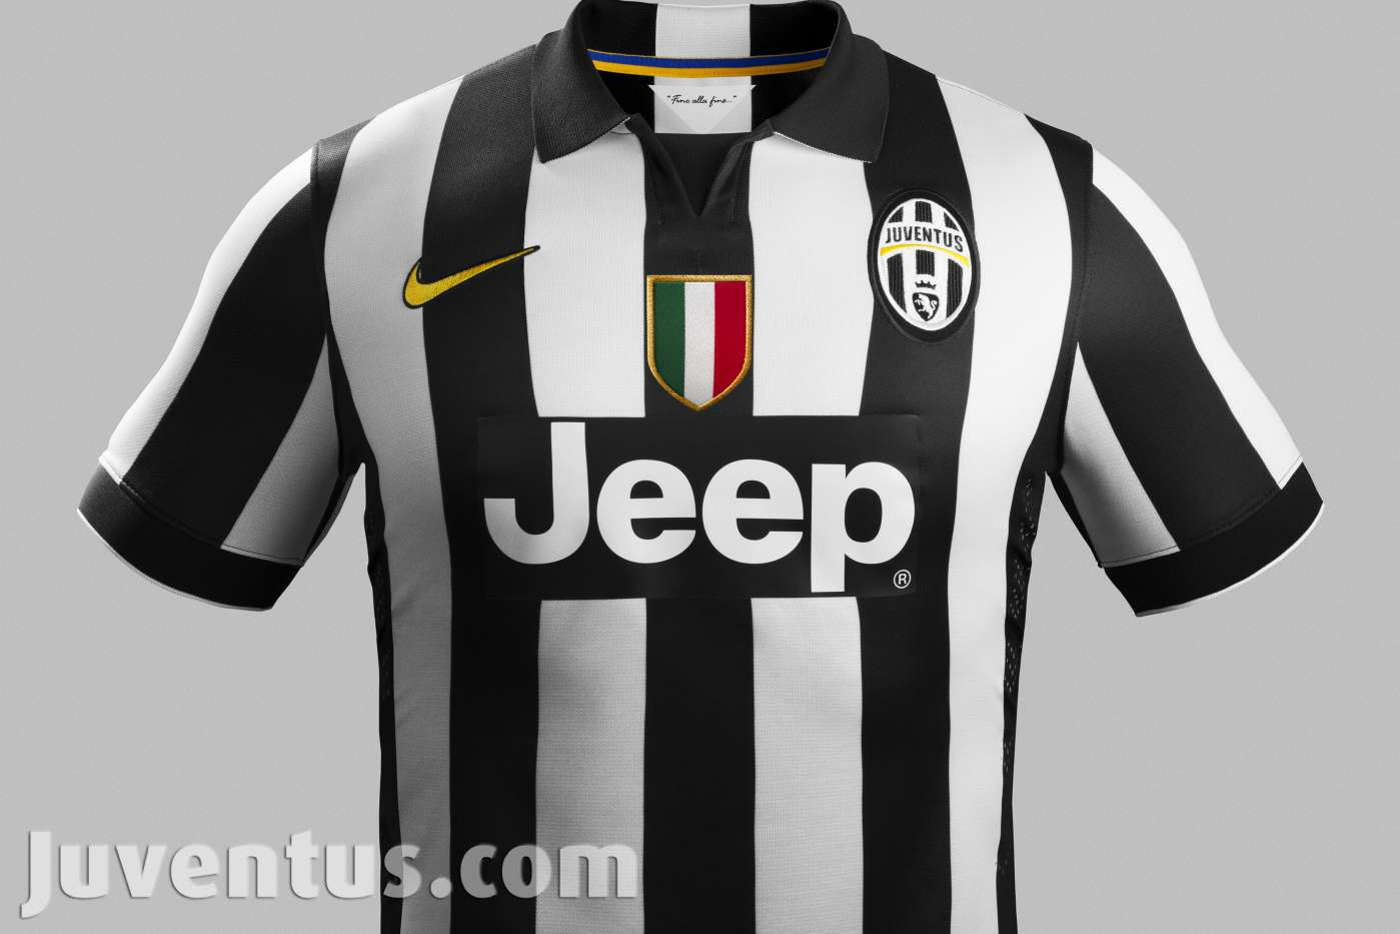 Juventus Home, Away and Third Shirts for 2014/15 Season: Kit Review and [PHOTOS]